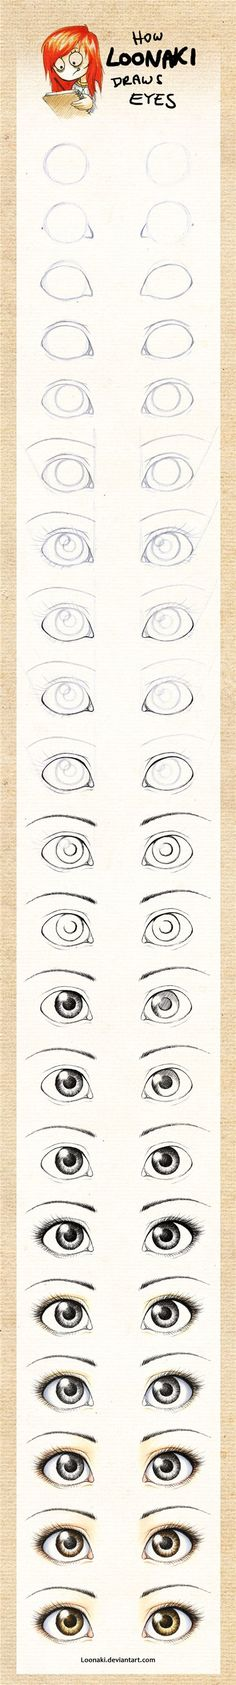 @rebekahmomo I found out how to draw eyes    5e3c46462f40b9d1bbc141aa5ff91f73.jpg (420×3000)